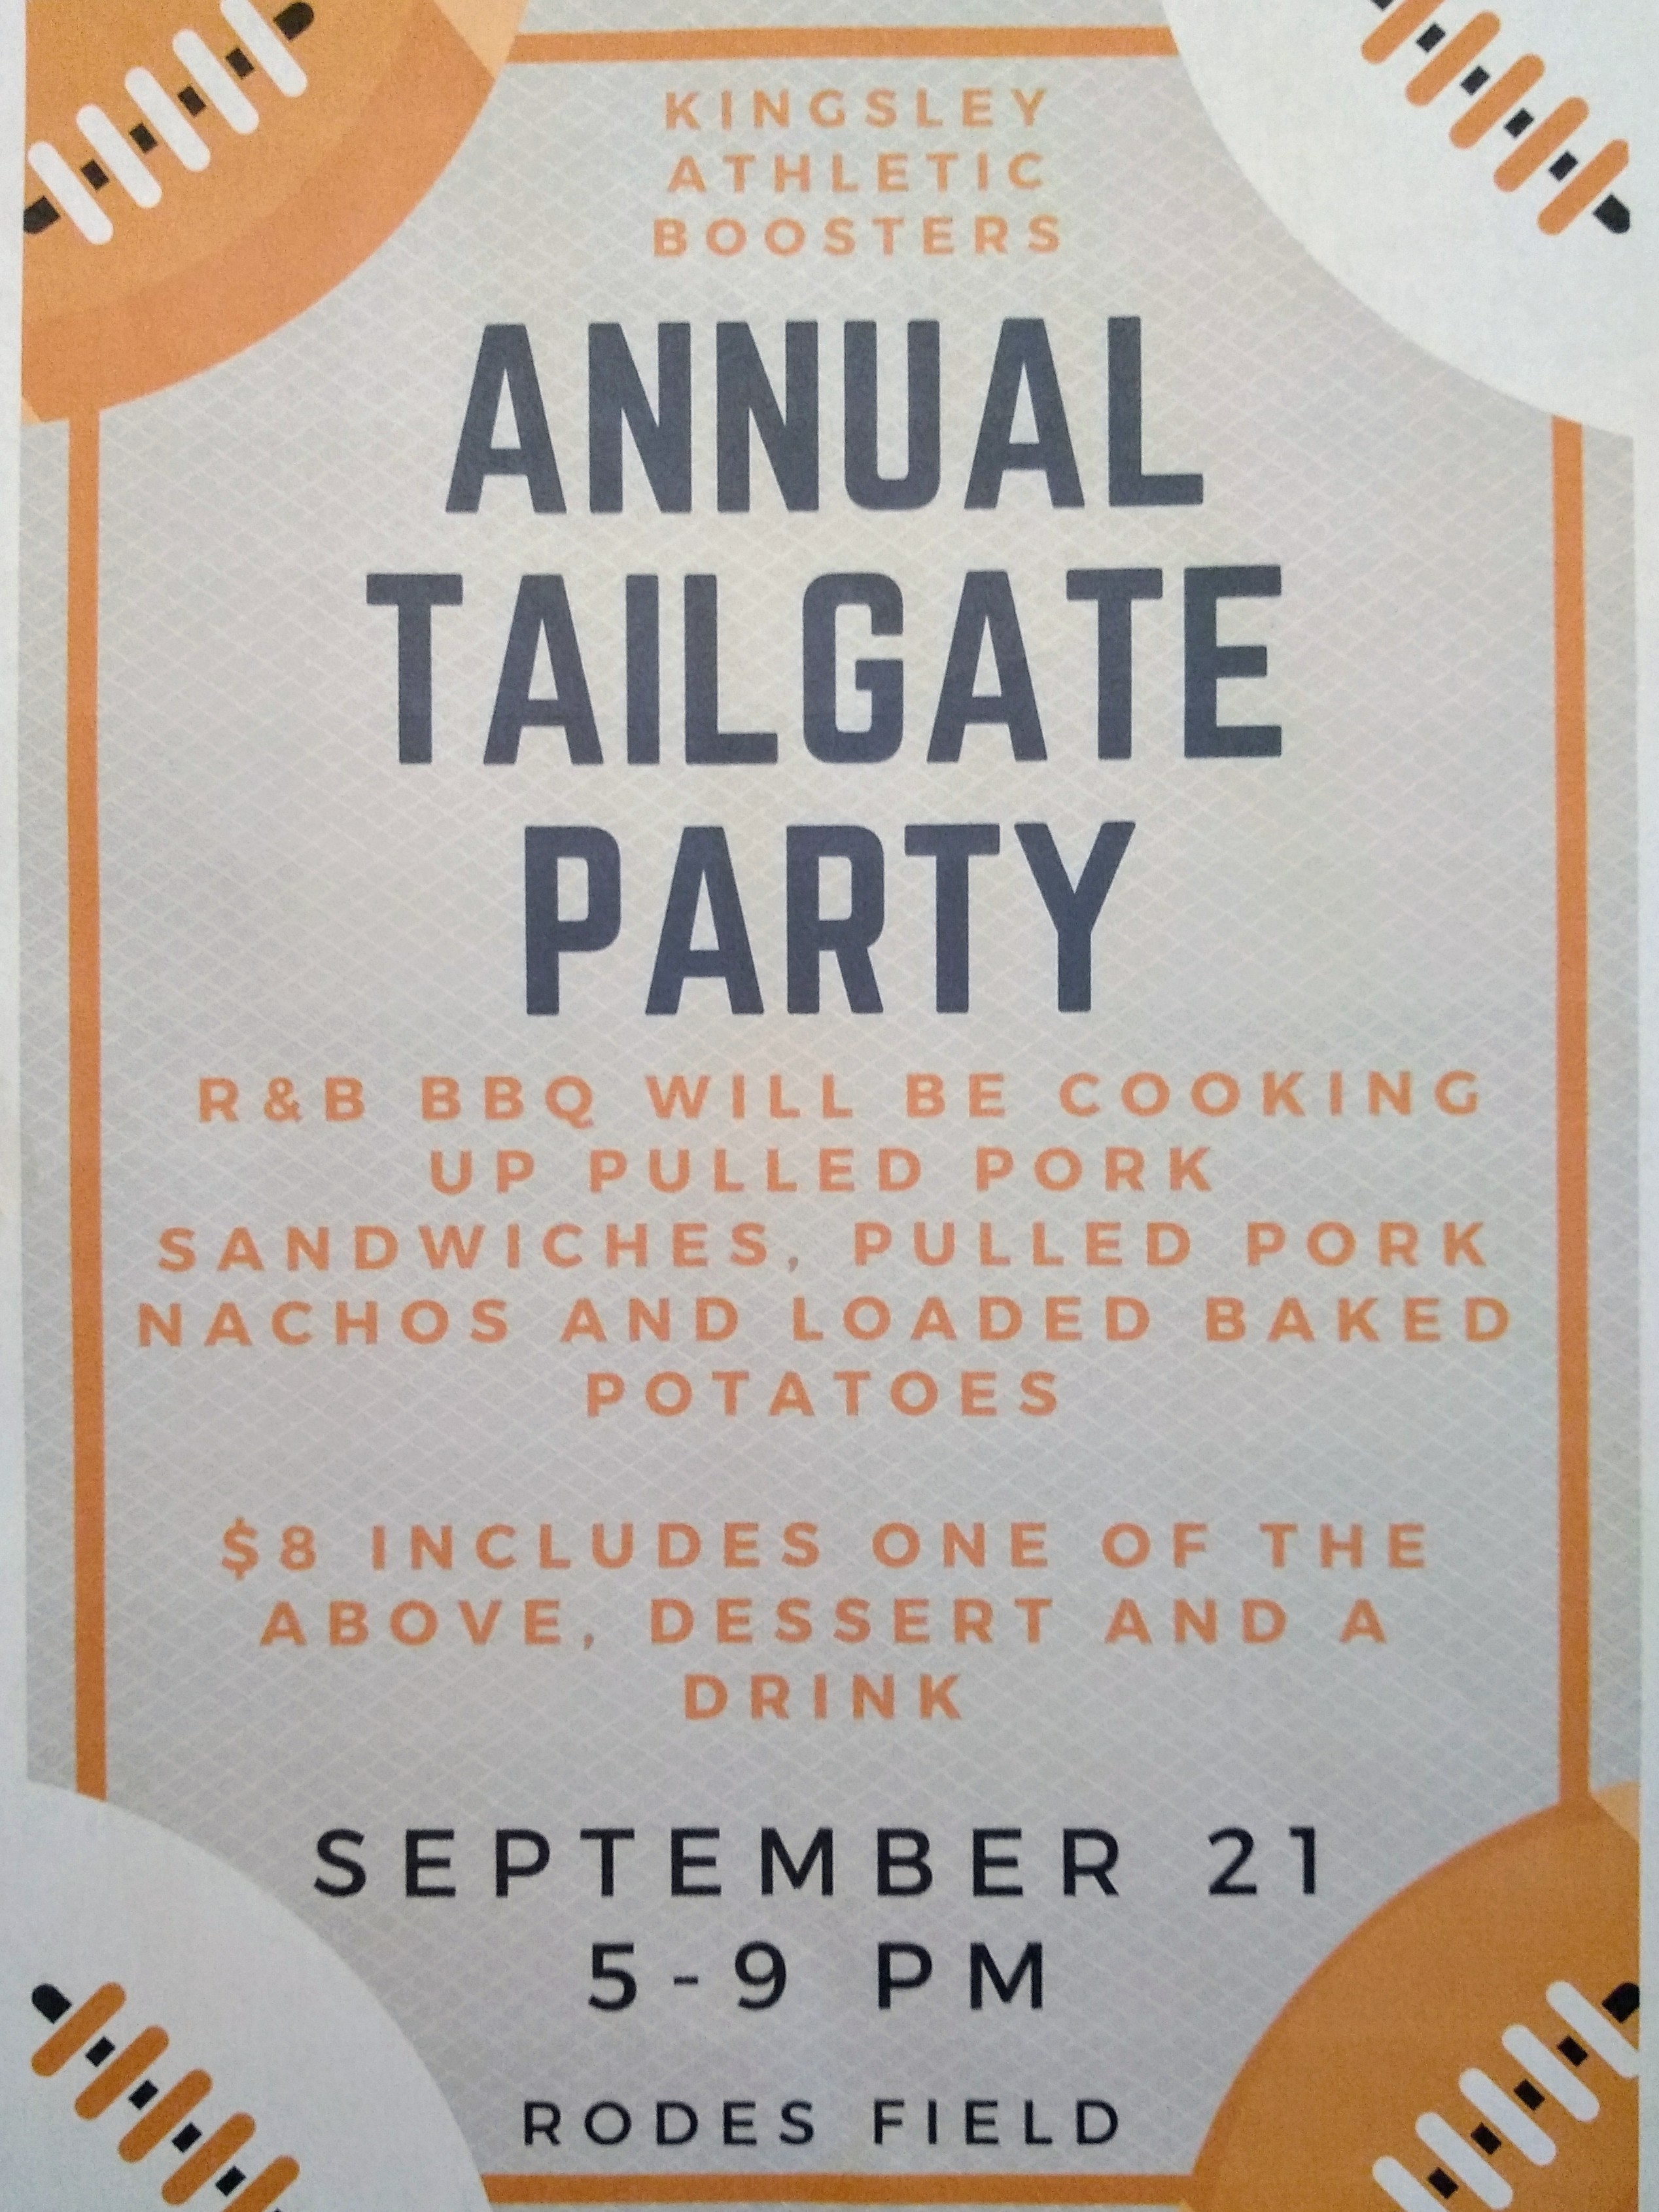 Kingsley Athletic Boosters' Annual Tailgate Party 9/21/18!